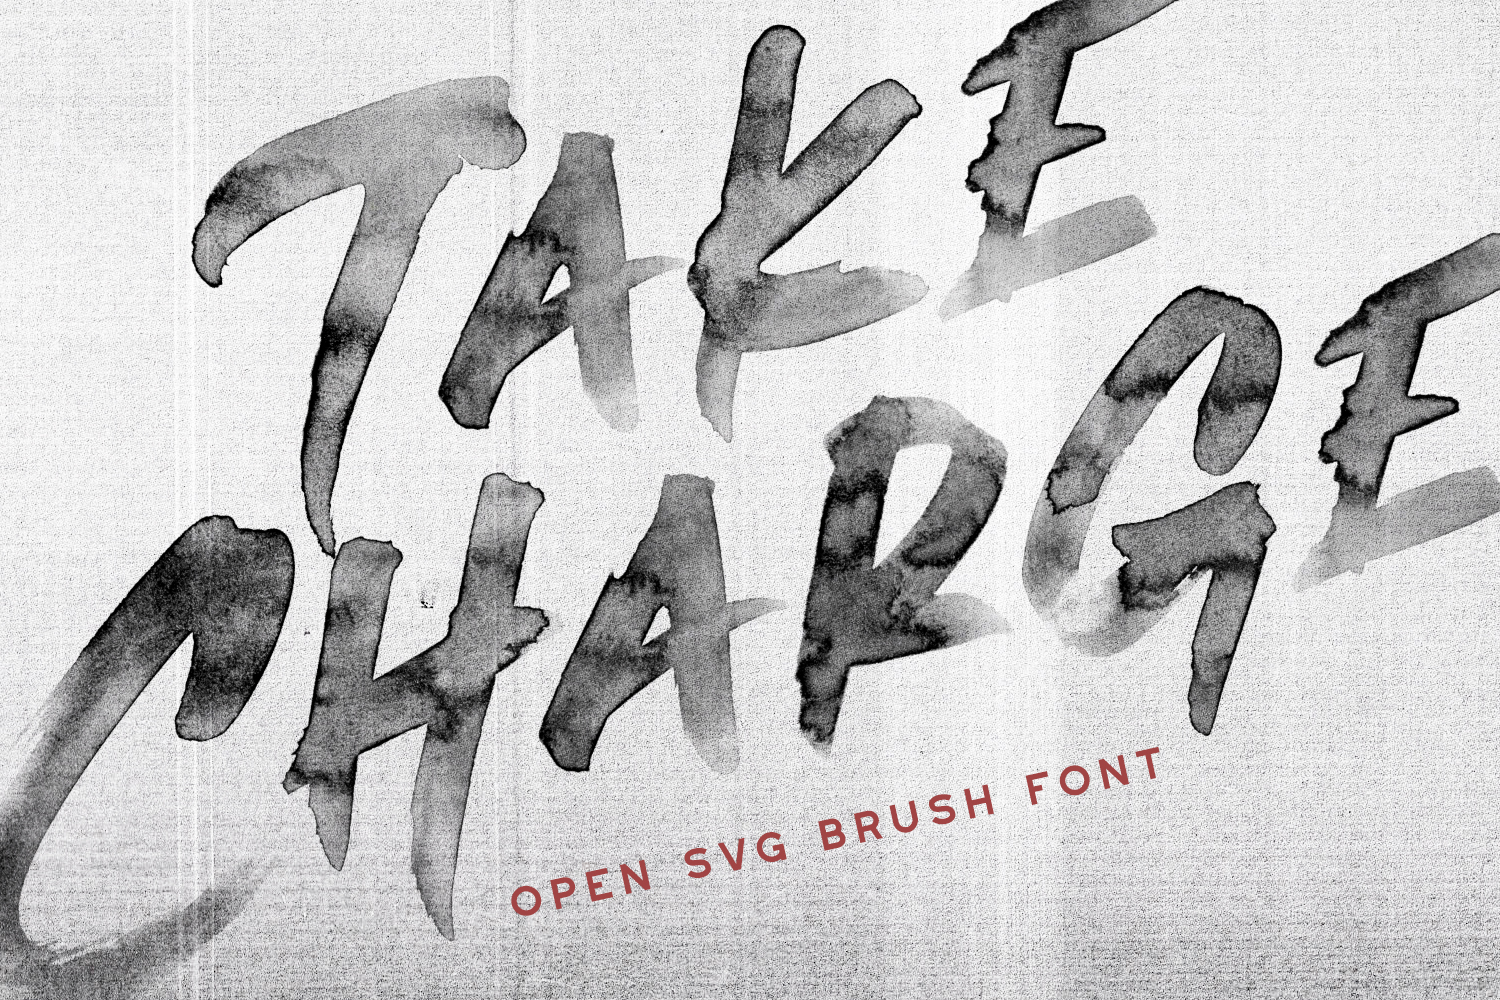 Take Charge - OpenSVG Font - Available on Creative Market